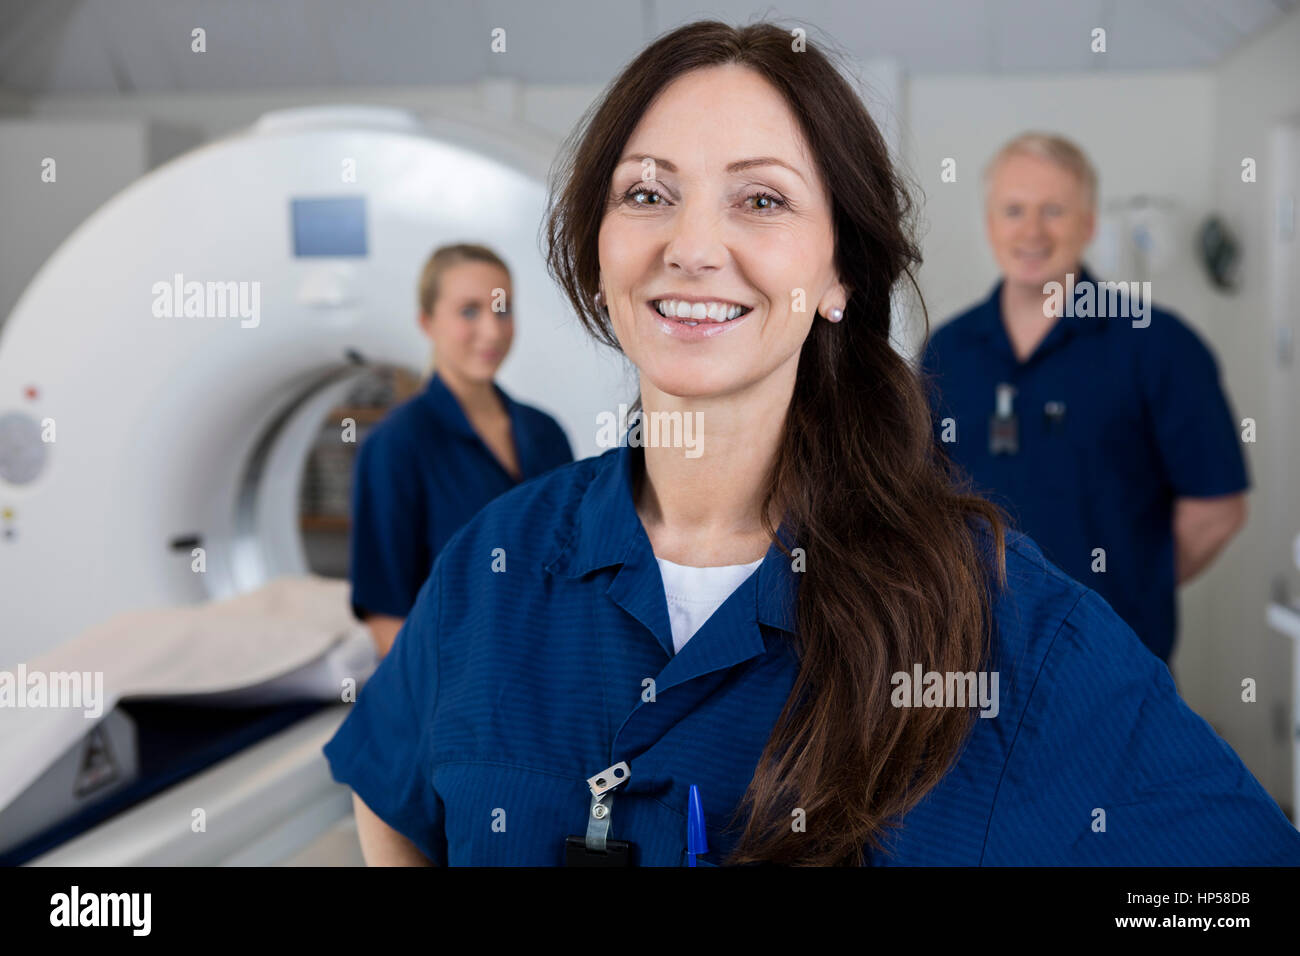 Smiling Female Radiologist With Colleagues Standing By MRI Machi - Stock Image